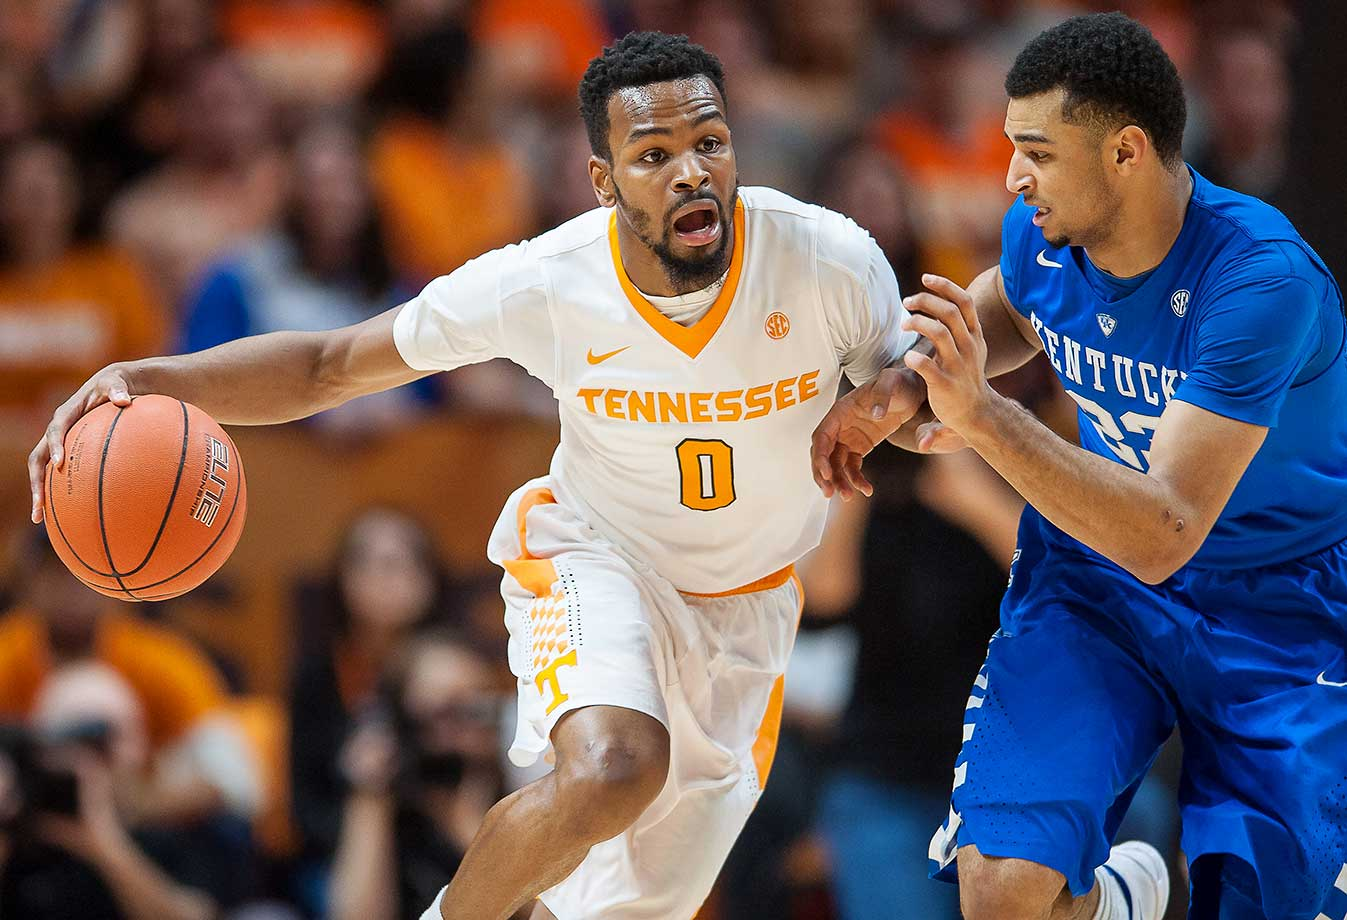 Tennessee Volunteers guard Kevin Punter brings the ball up the court against Kentucky Wildcats guard Jamal Murray  at Thompson-Boling Arena in Knoxville, Tenn.  Tennessee defeated the Wildcats 84-77.